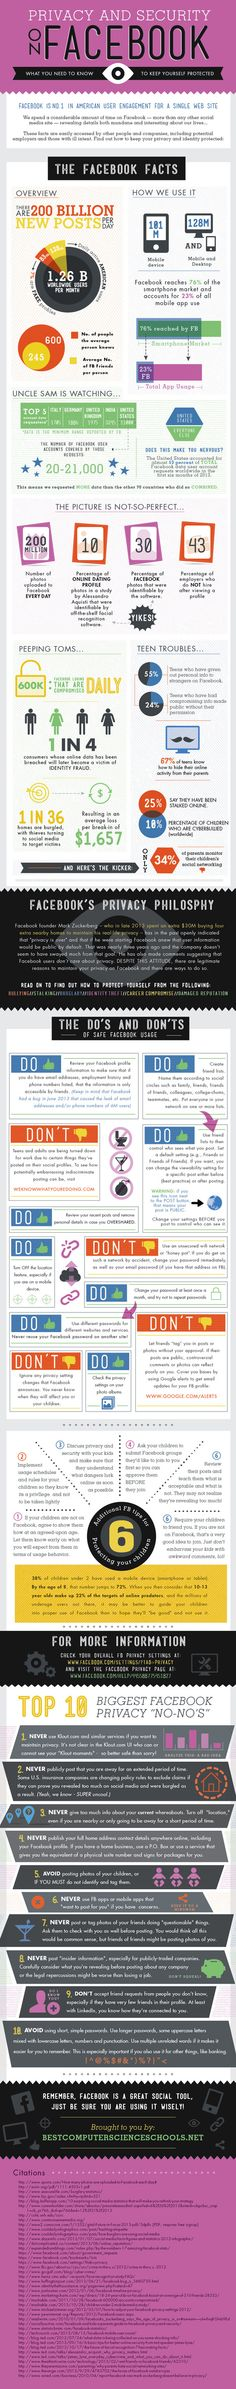 Infographic:  Everything you need to know about privacy on Facebook